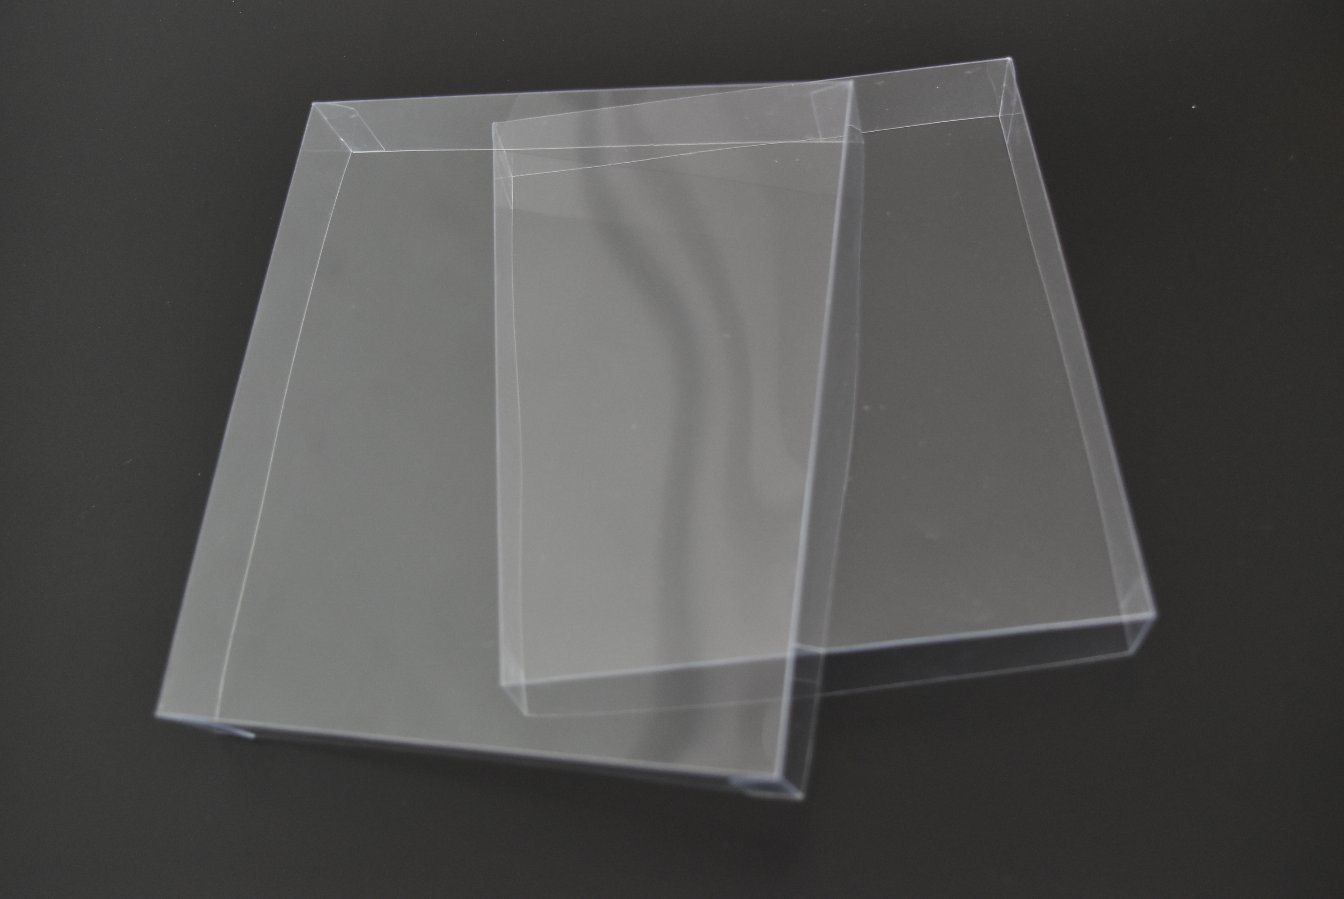 d3d52e5f61a China Customized PVC Clear Plastic Packaging Box - China PVC Boxes ...